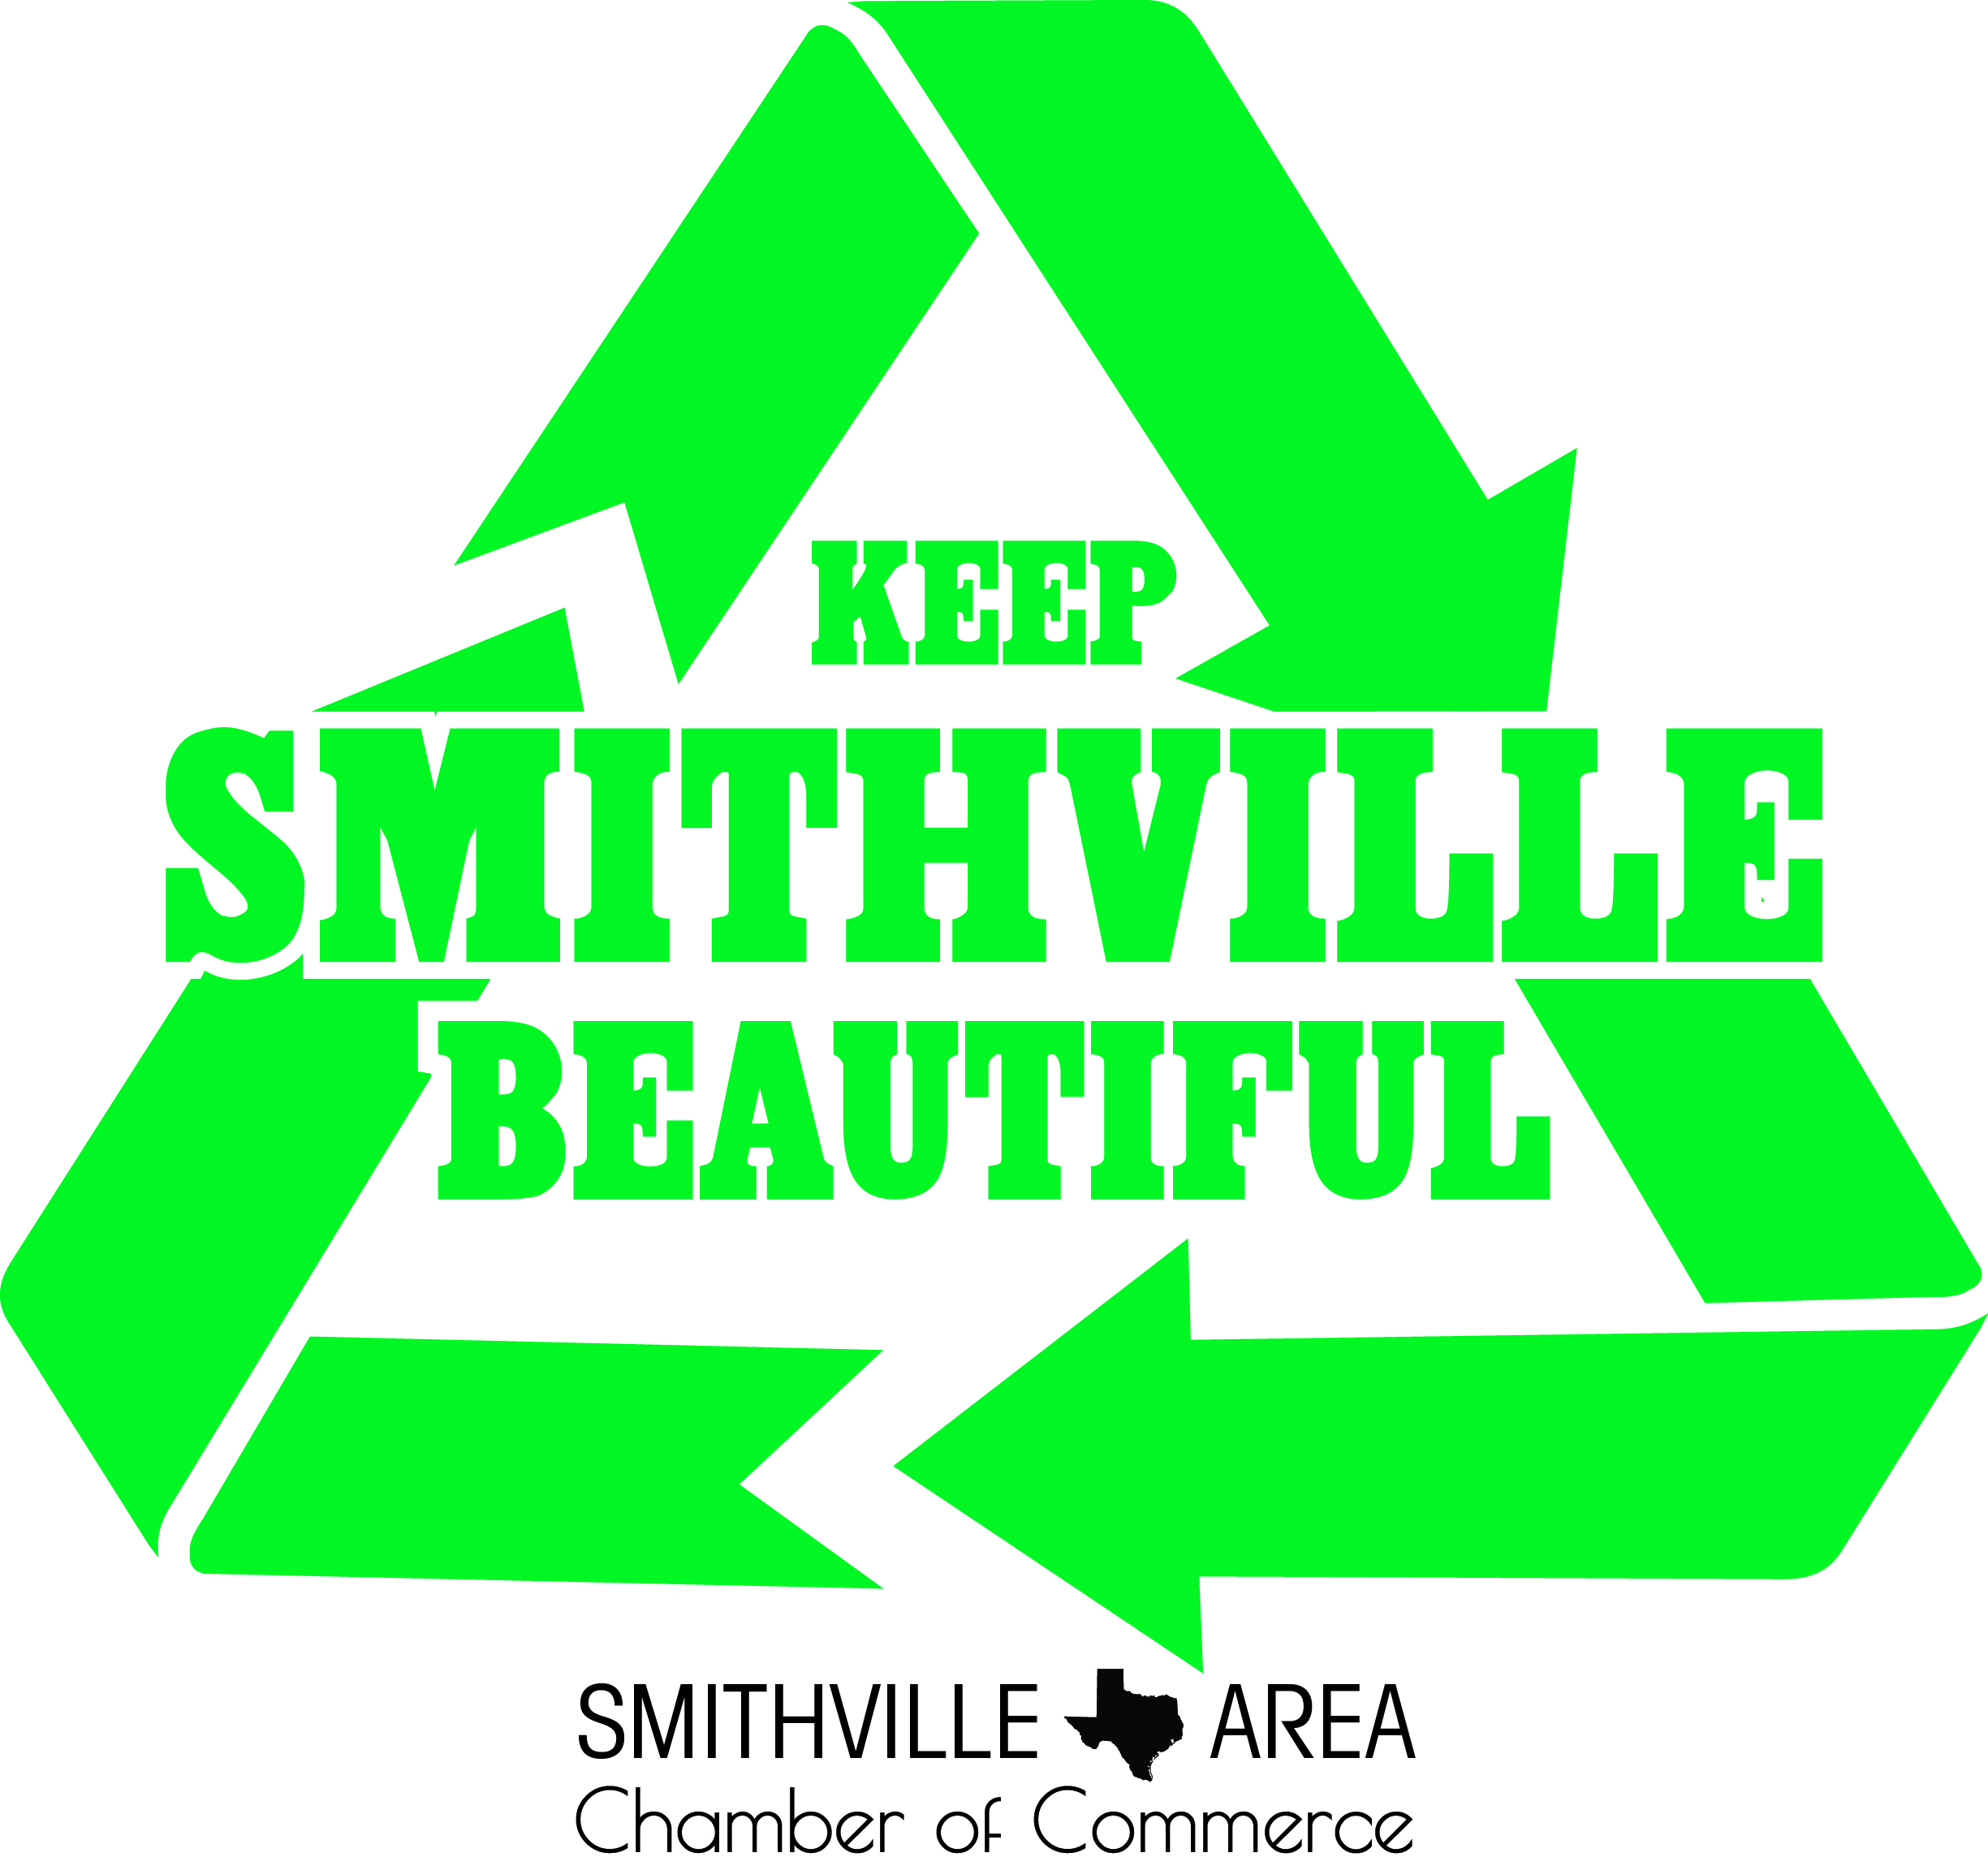 Keep Smithville Beautiful - Smithville Area Chamber of